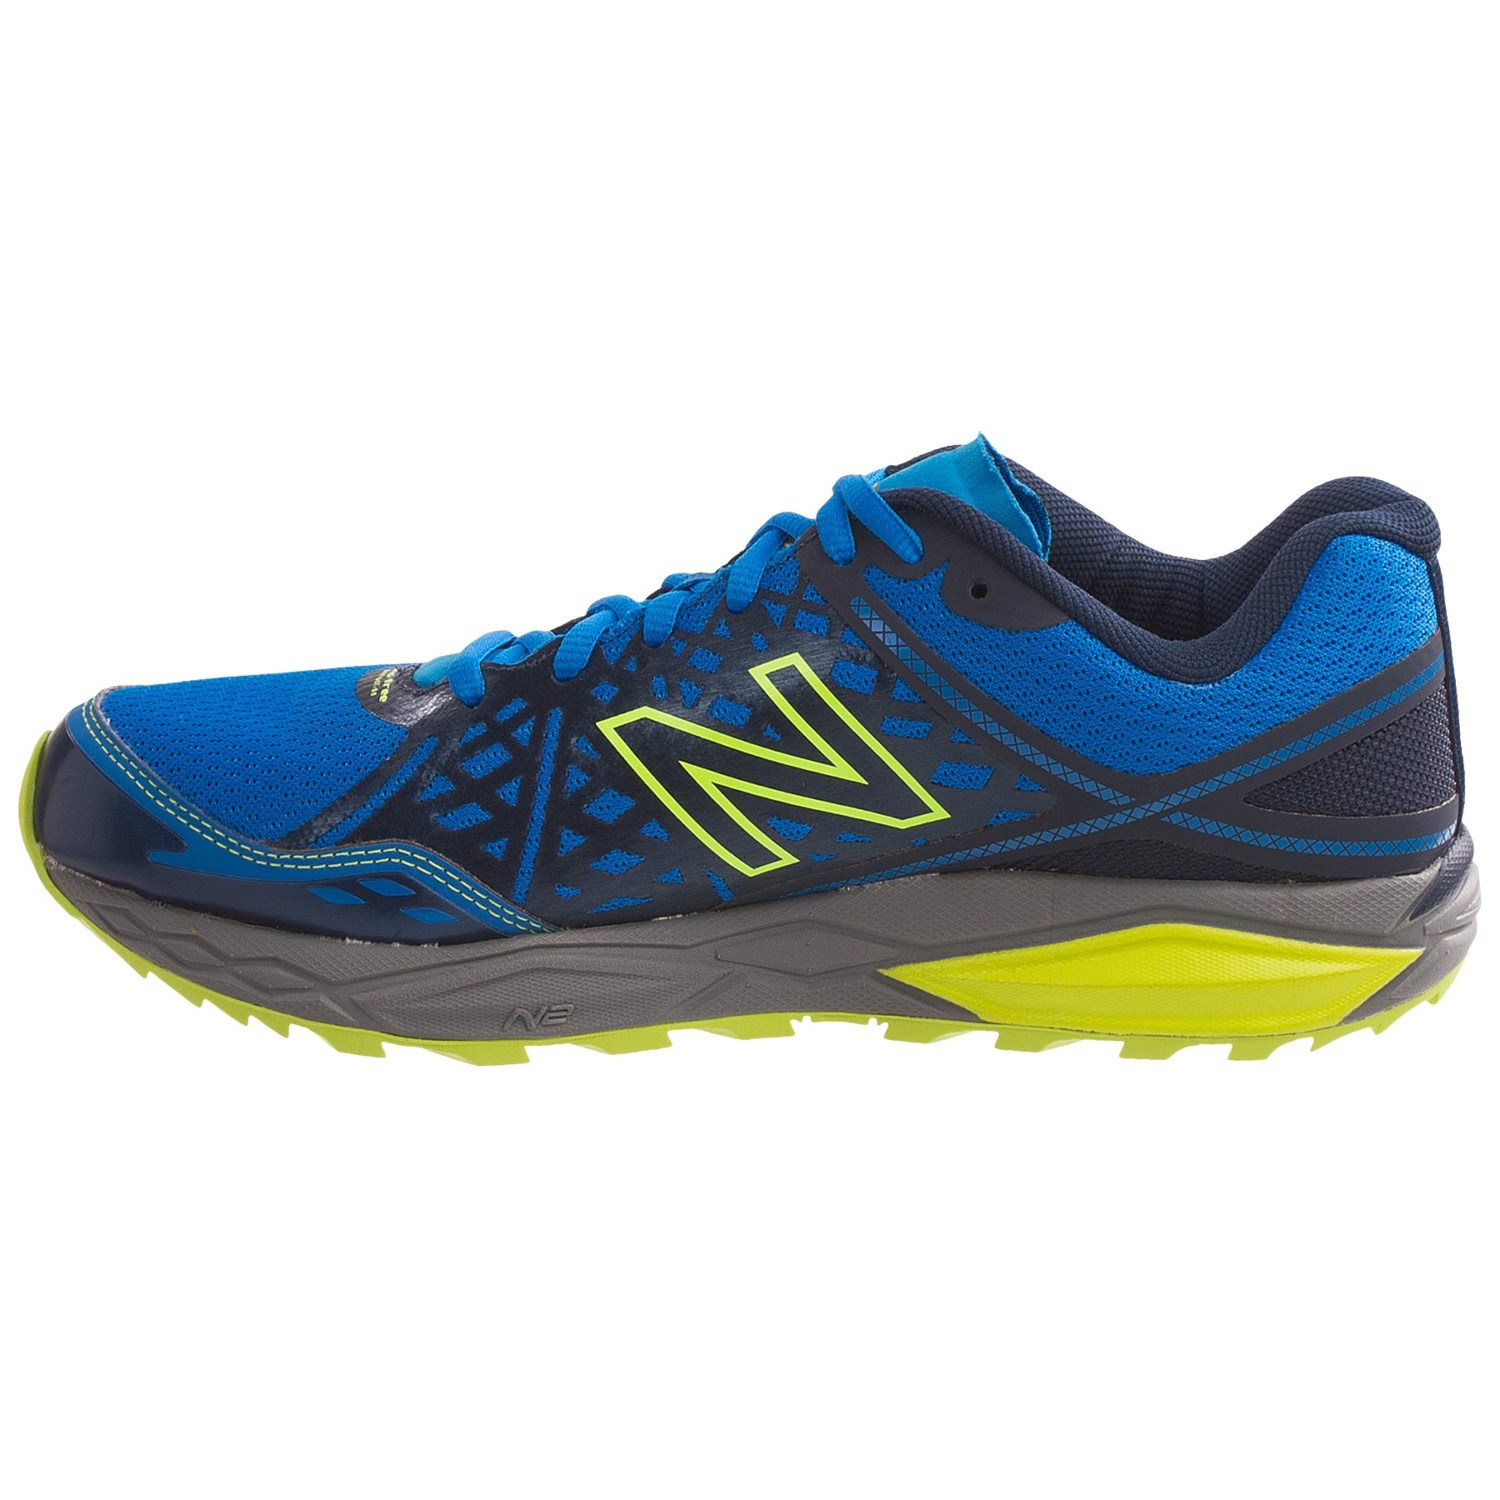 new balance leadville 1210v2 trail running shoes for